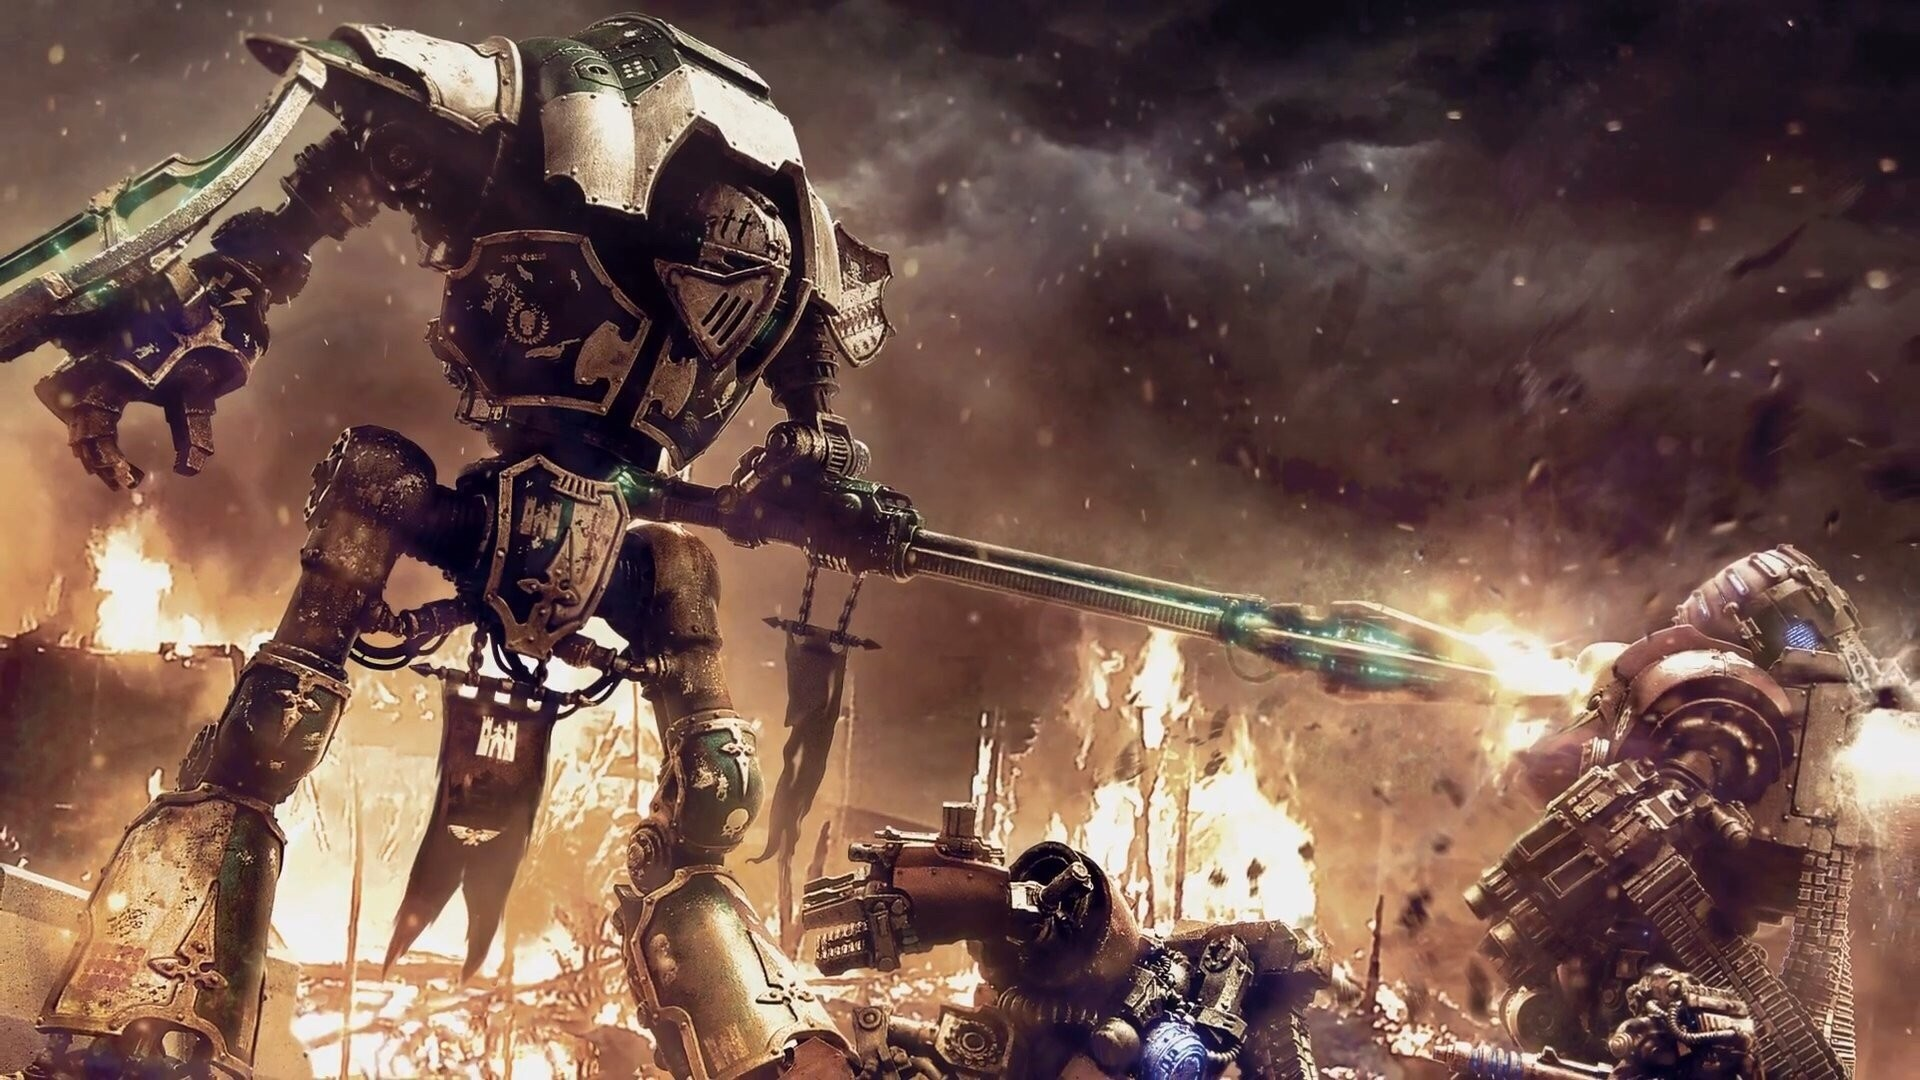 1920x1080 Top Comment. Warhammer 40k Wallpapers.